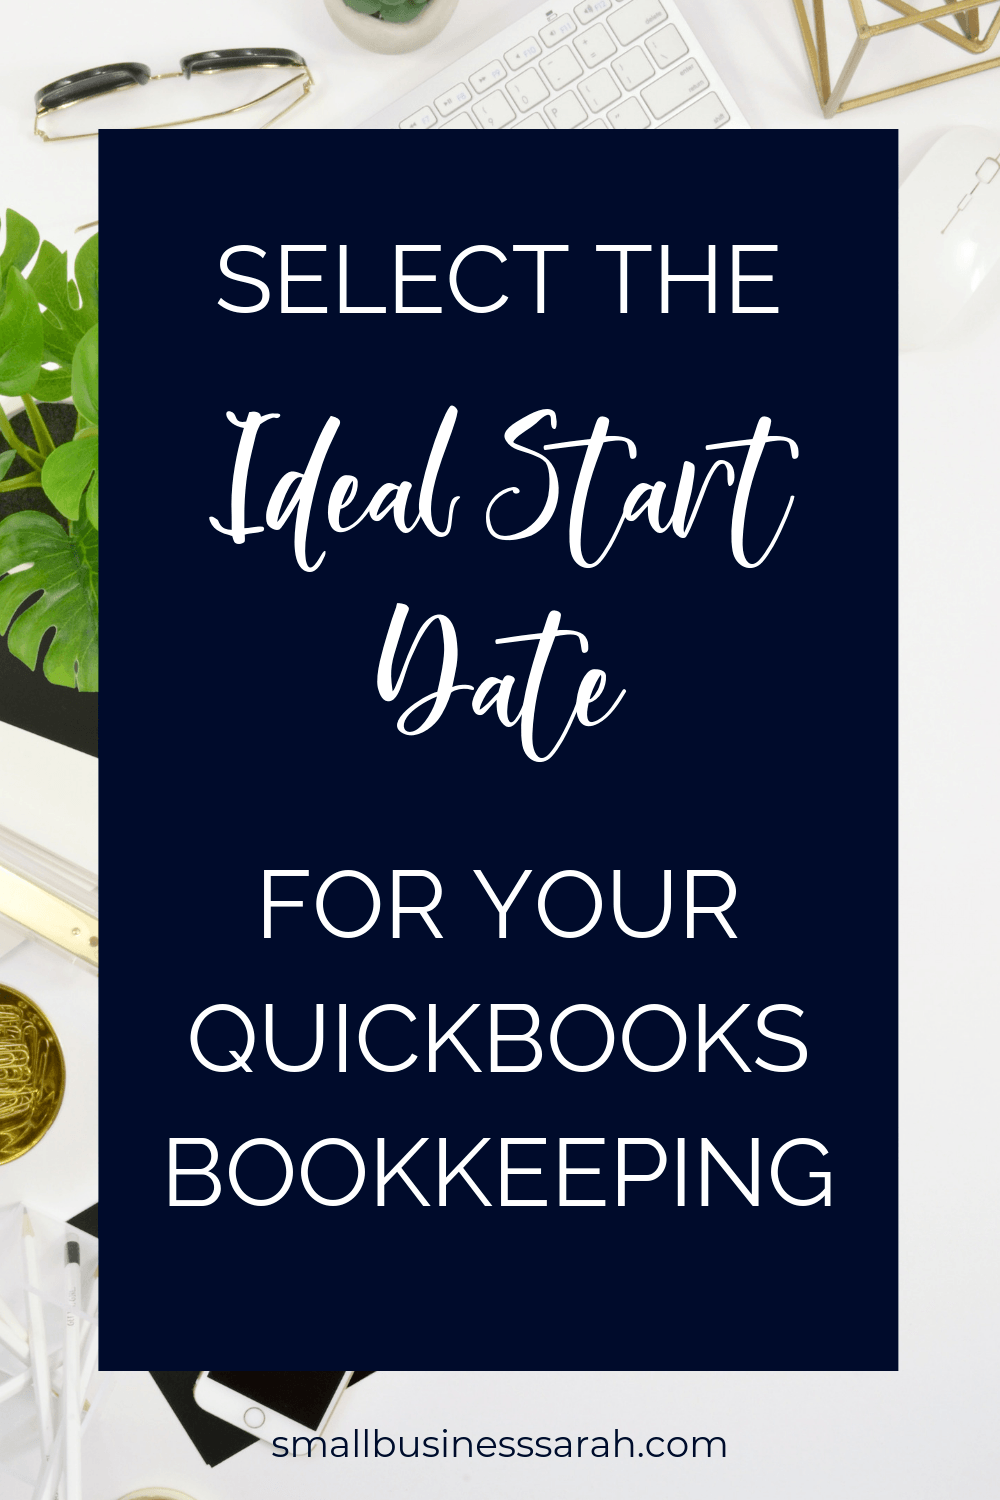 Select the Ideal Start Date for your QuickBooks Bookkeeping